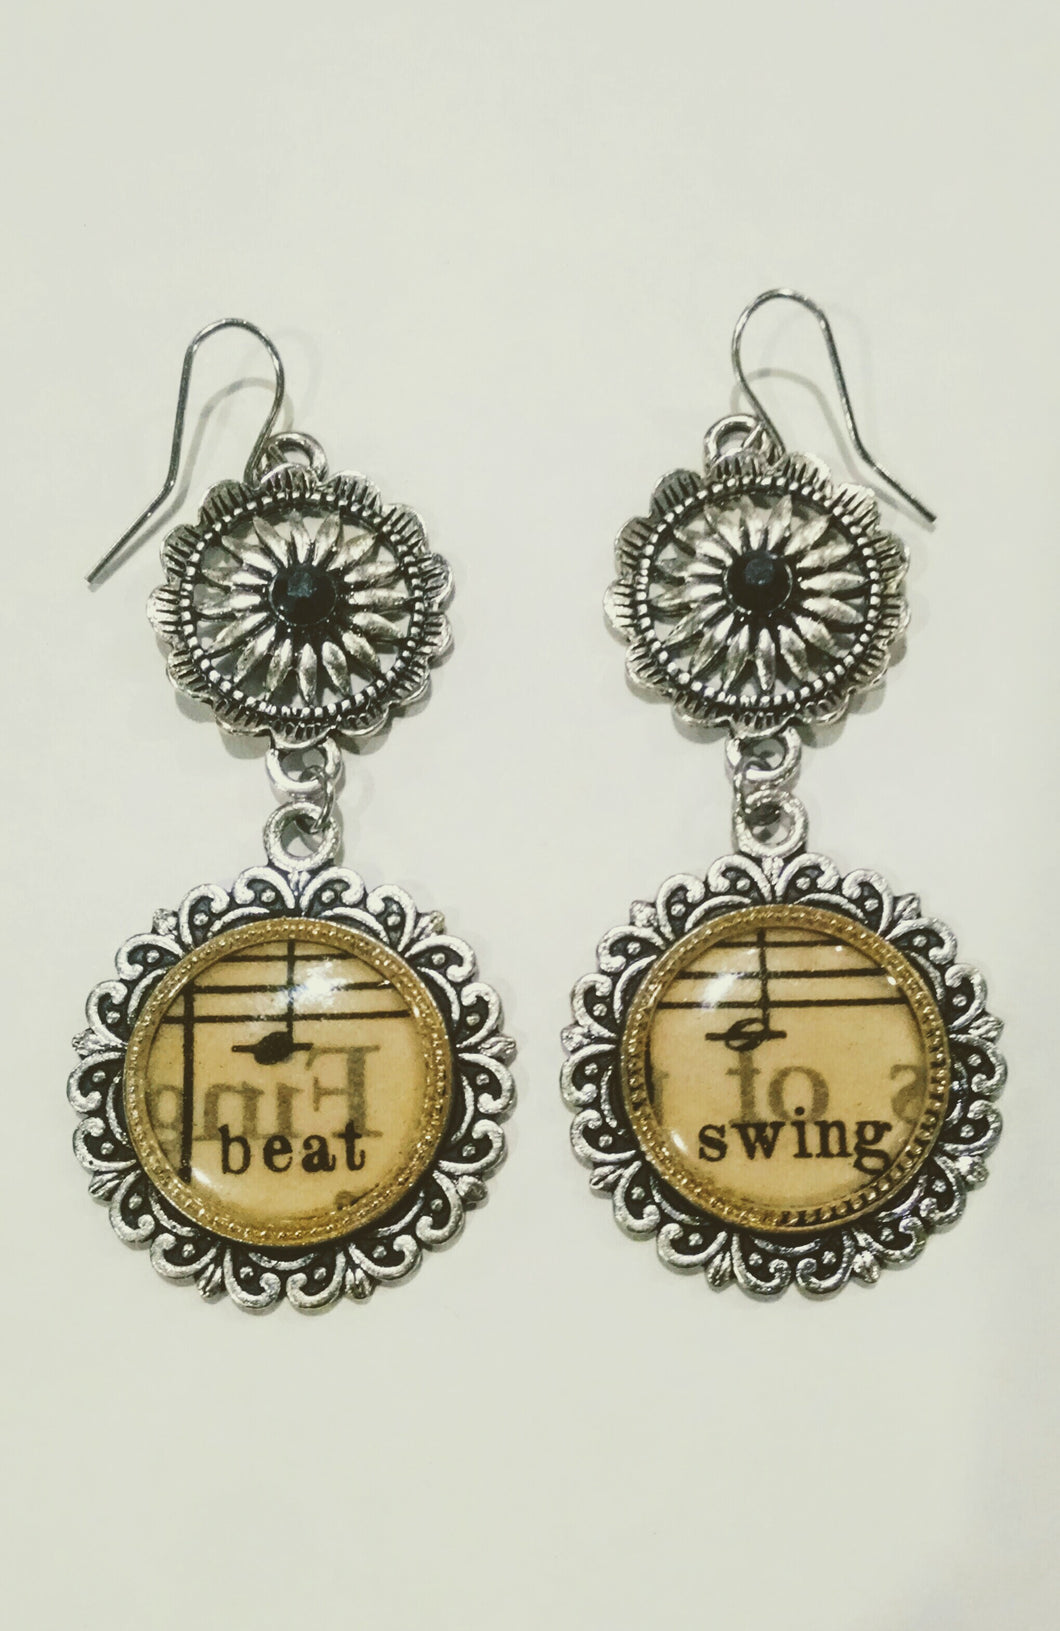 2-Tier Musical Note Earrings